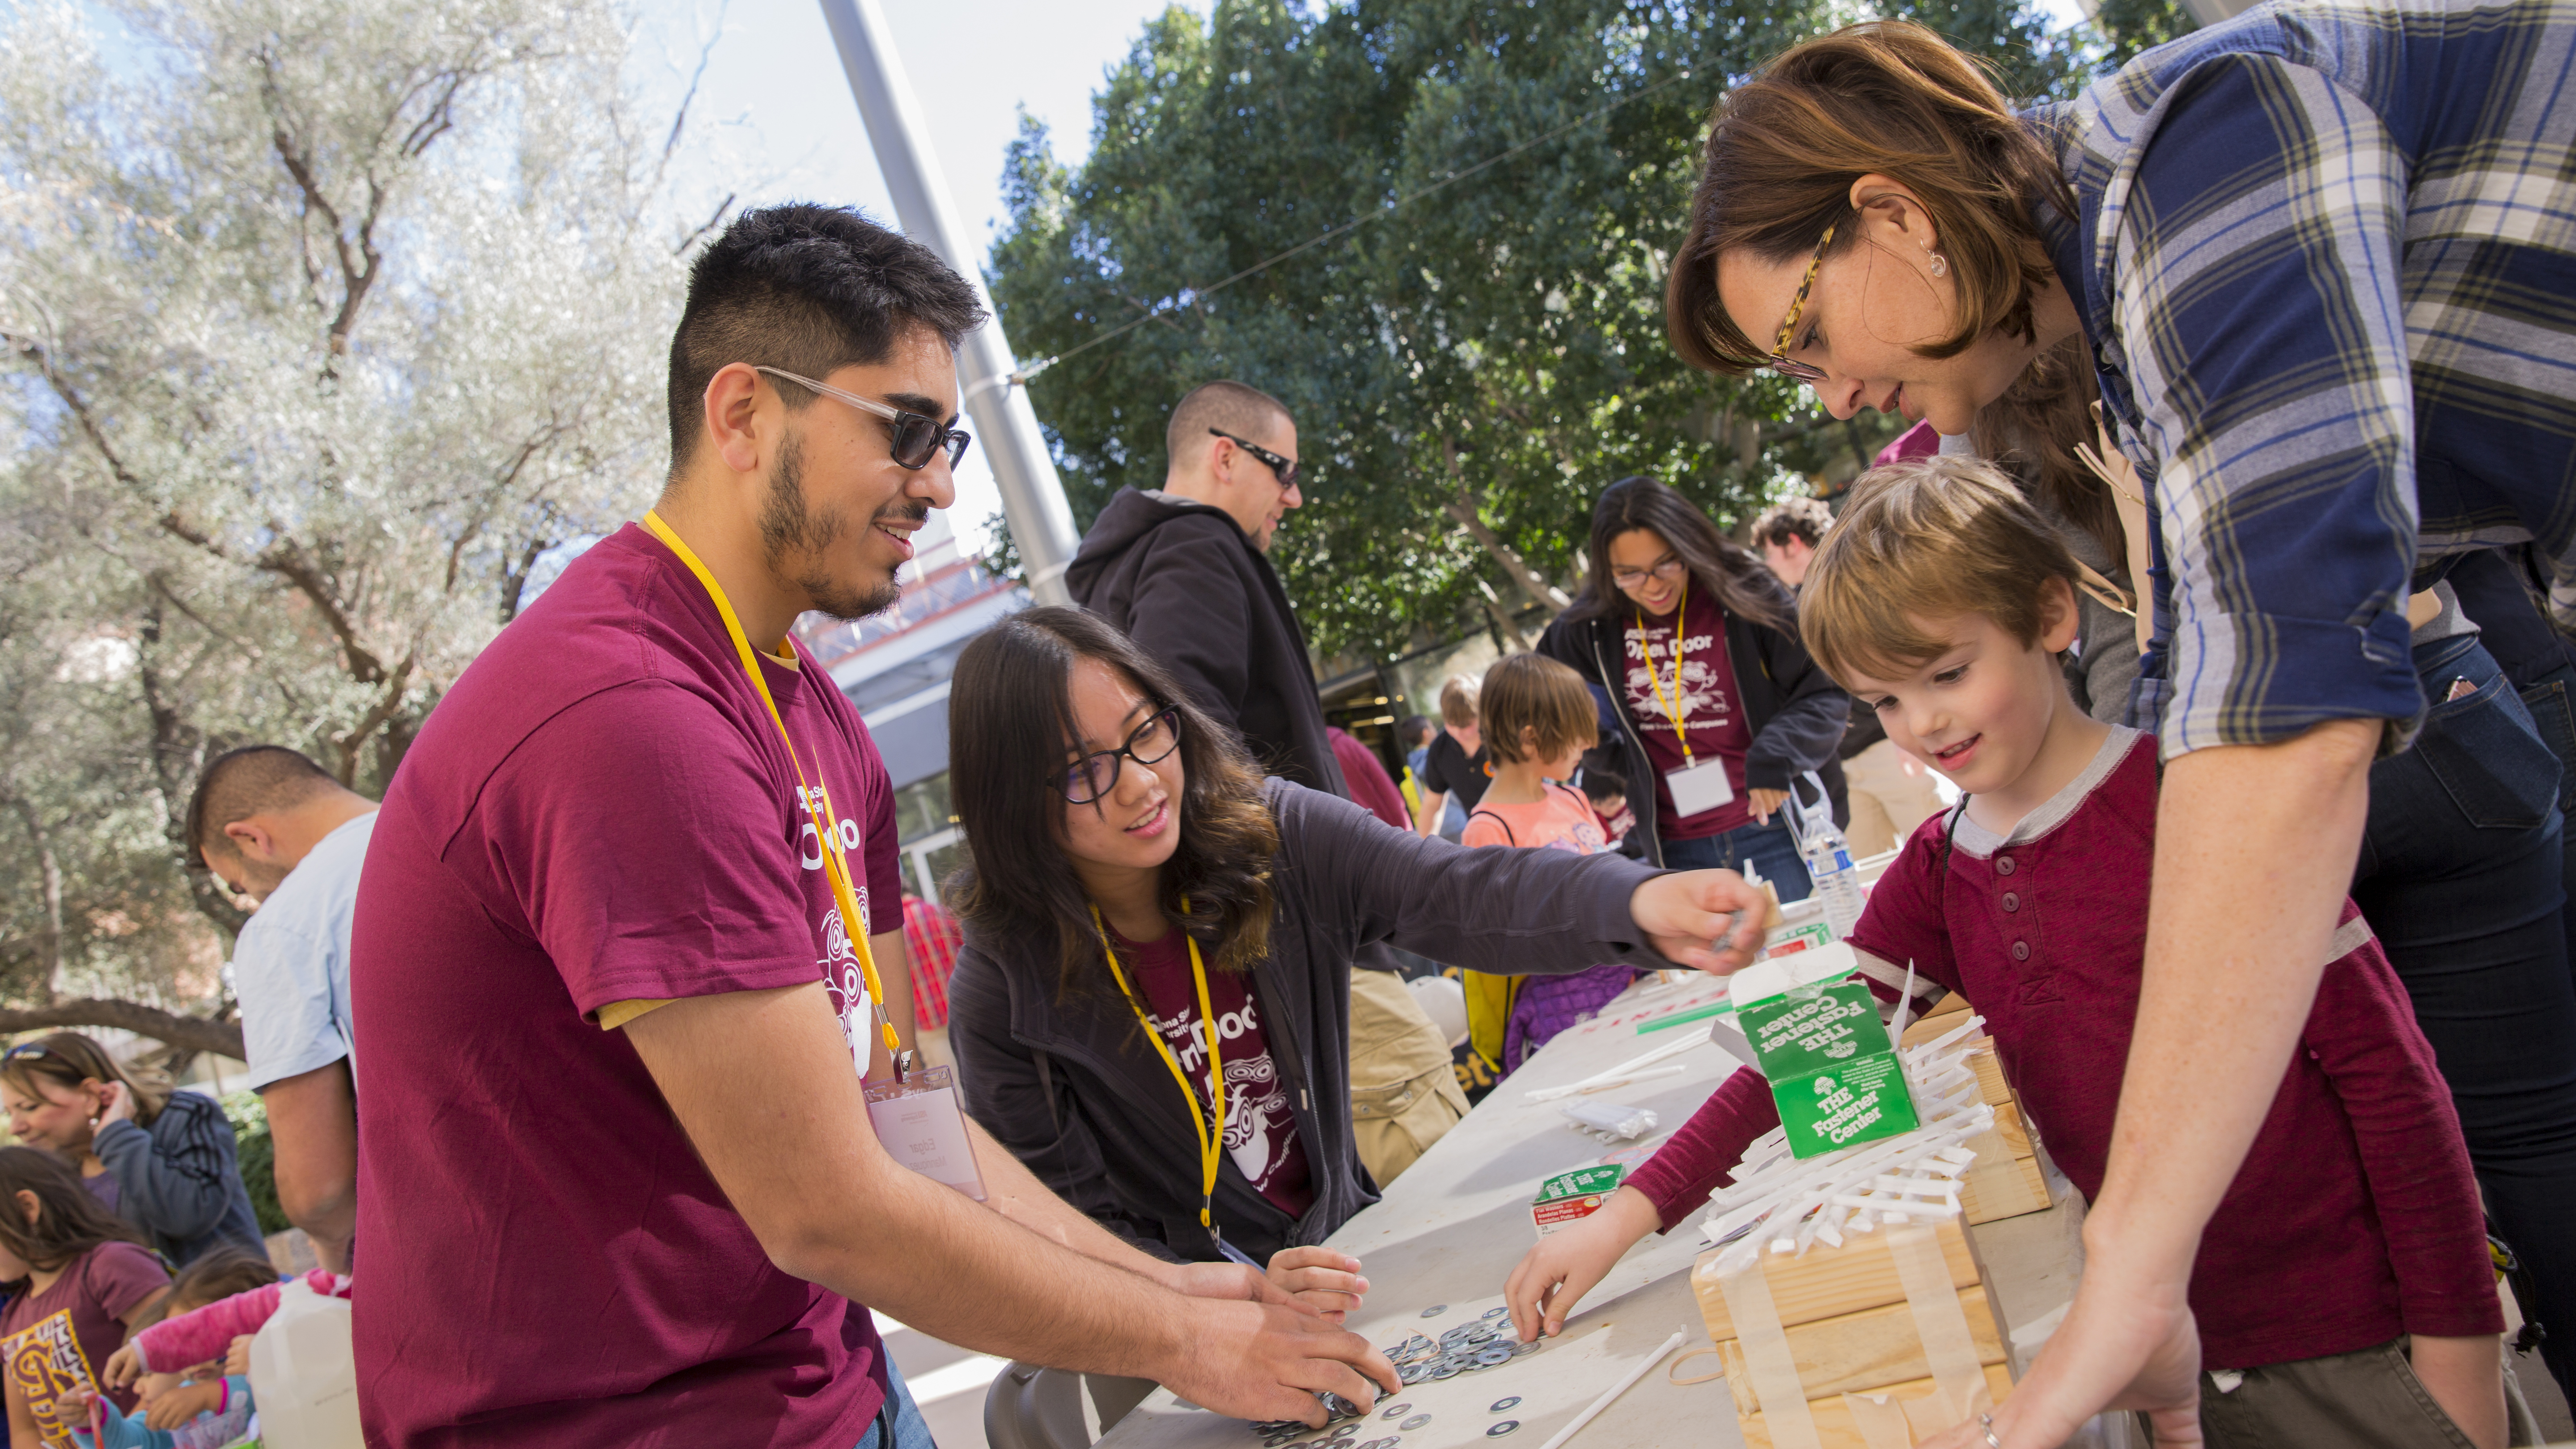 Child and ASU students at ASU Open Door 2018